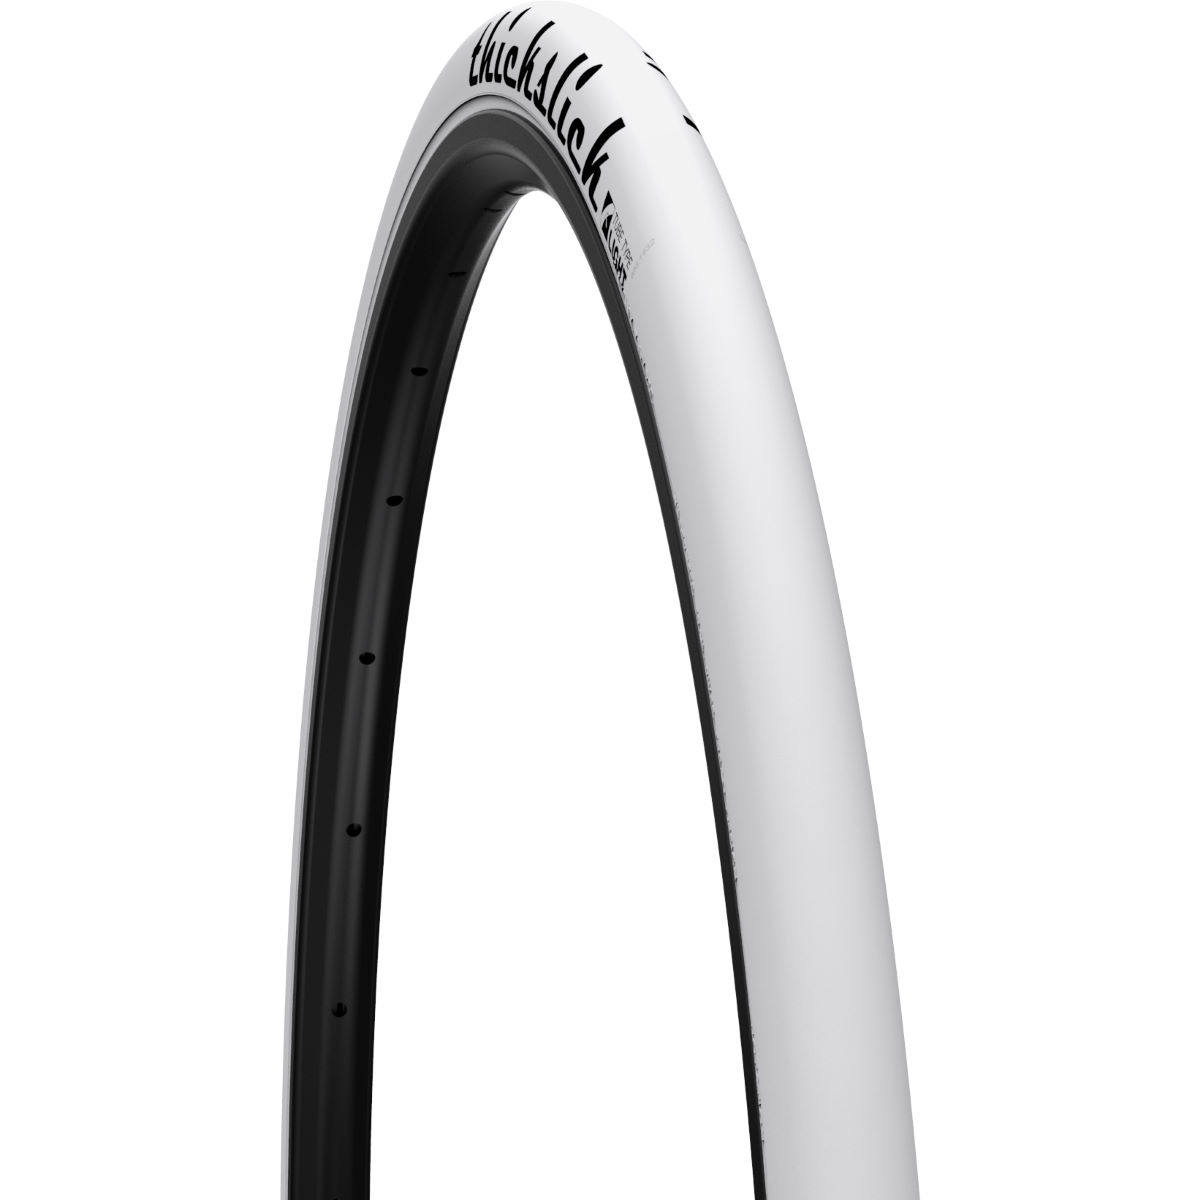 WTB Thickslick Comp Tyre - Cubiertas